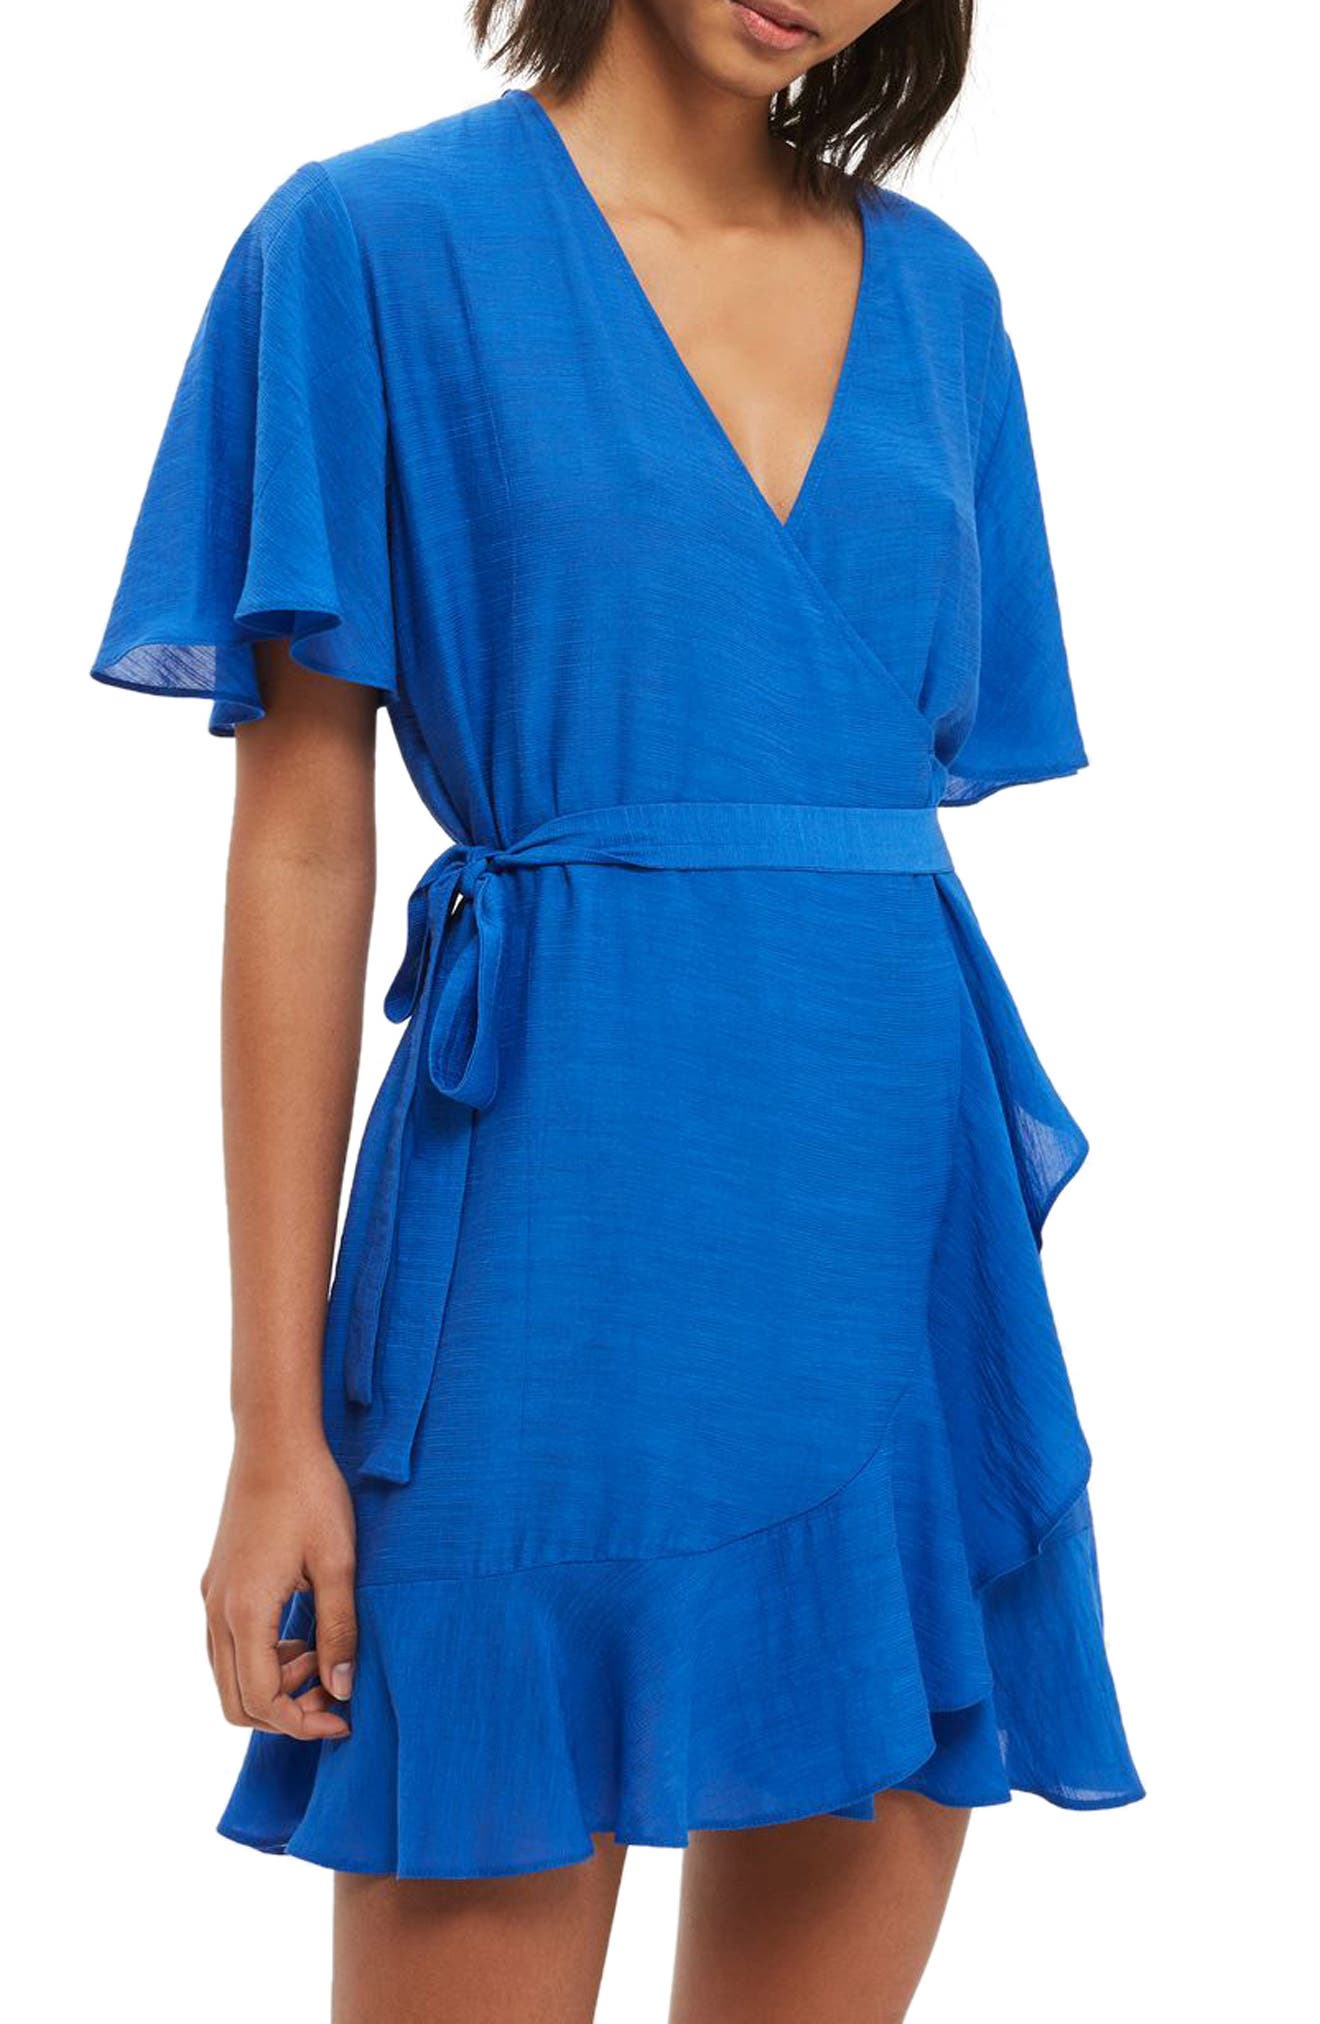 Topshop Ruffle Wrap Dress